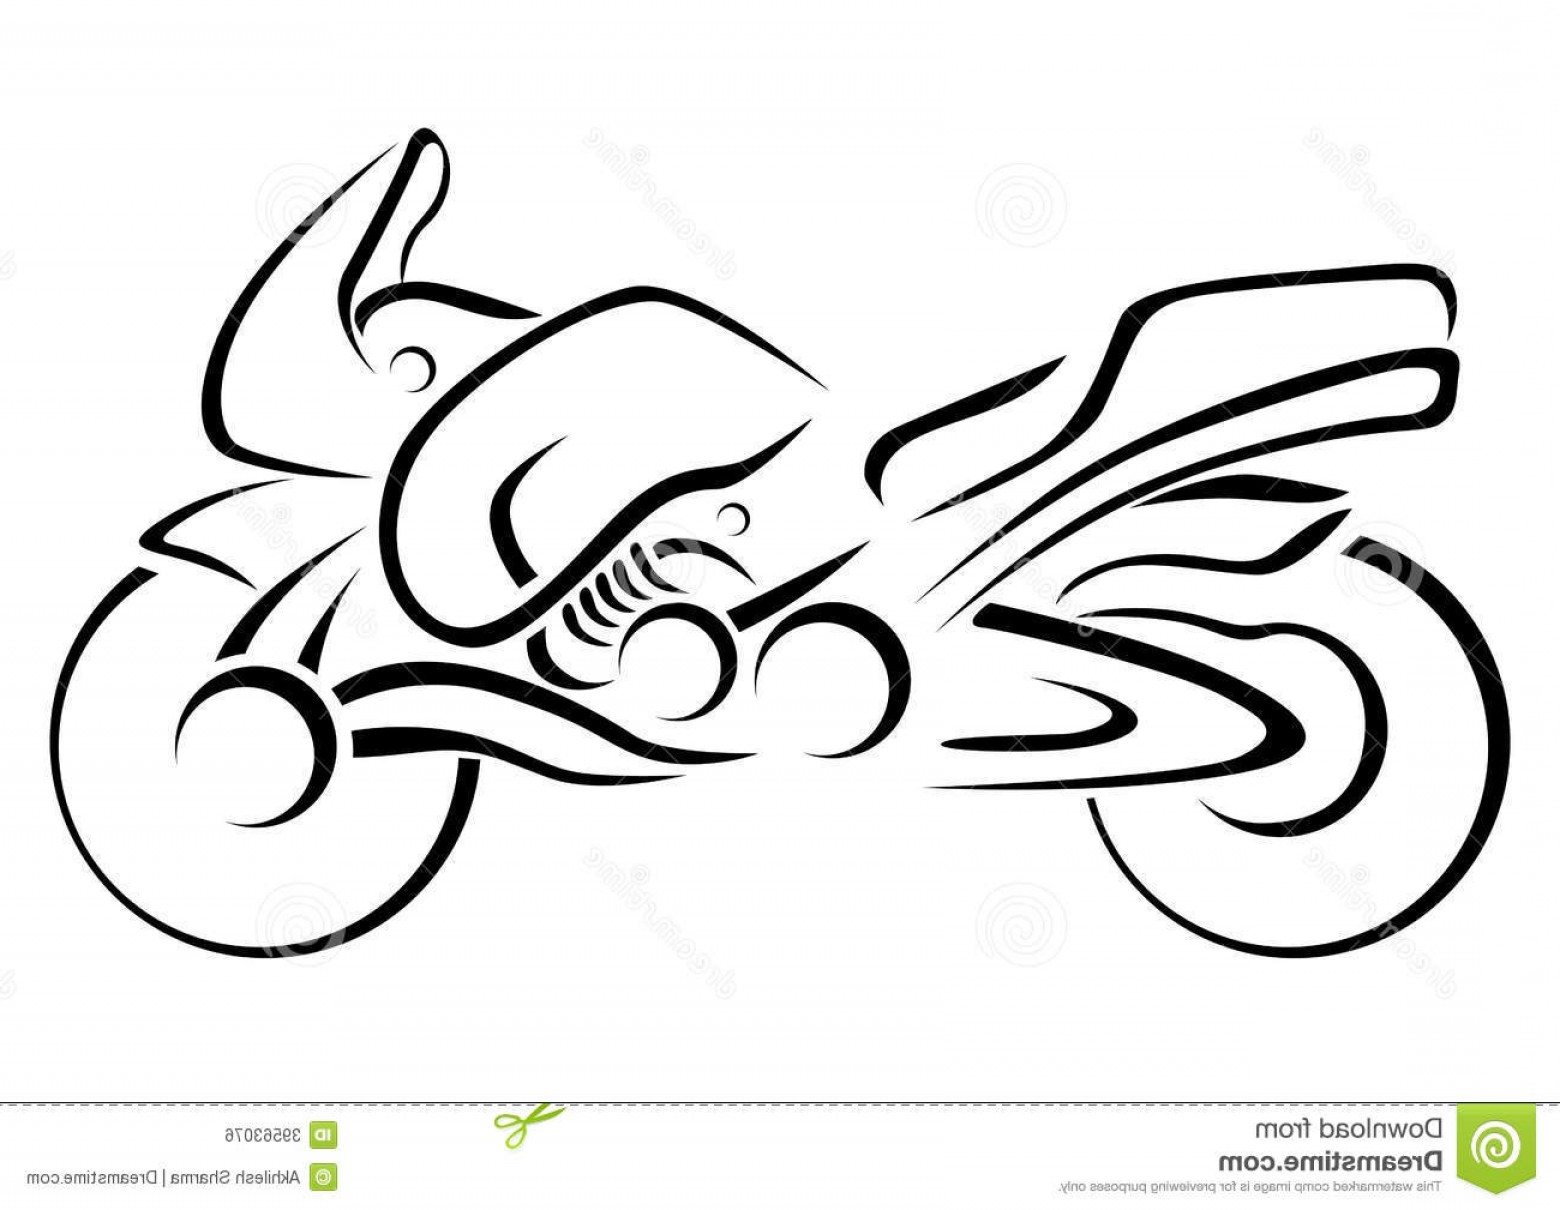 Stylized Vector Motorcycle: Royalty Free Stock Image Stylized Motorcycle Vector Illustration Stylised Brush Strokes Image